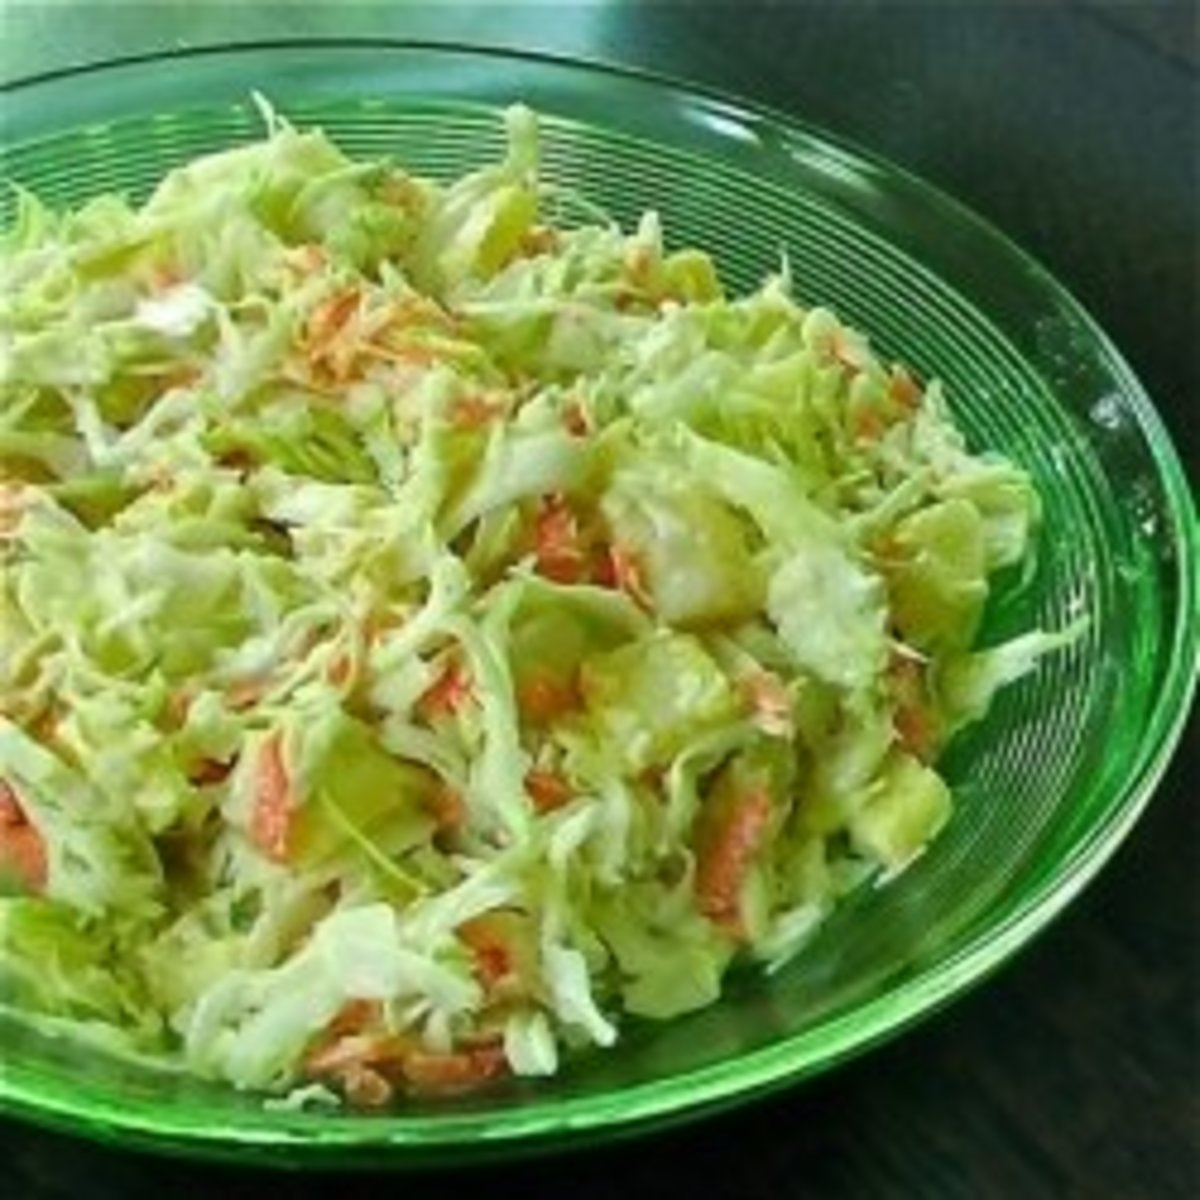 My Mom's Pineapple Coleslaw Recipe